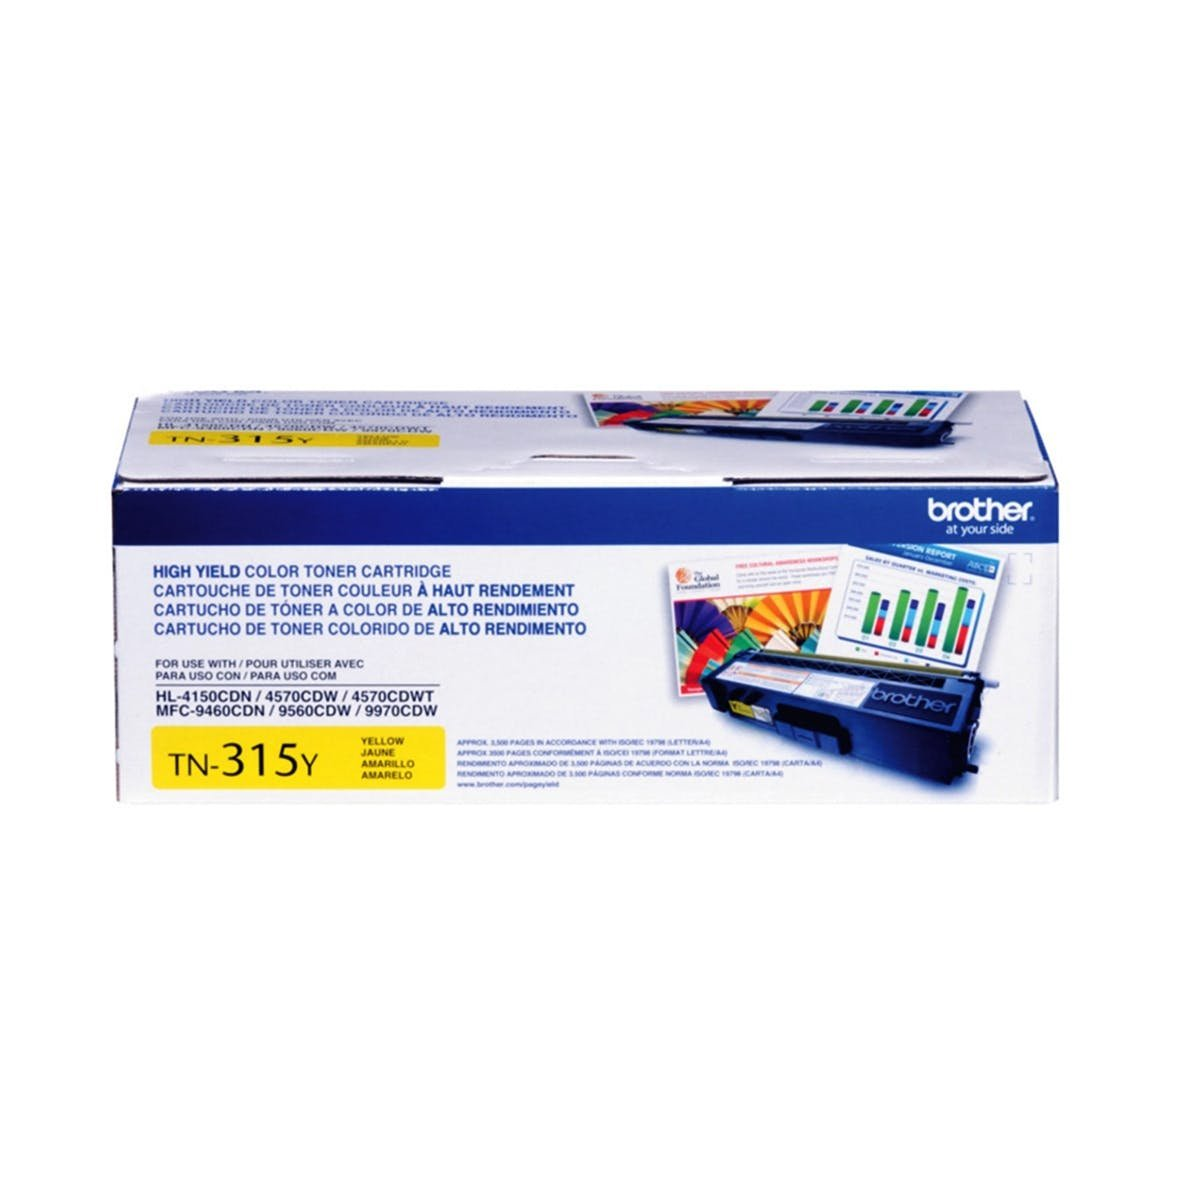 Brother TN315Y Cartridge Yellow 1 Pack Image 1